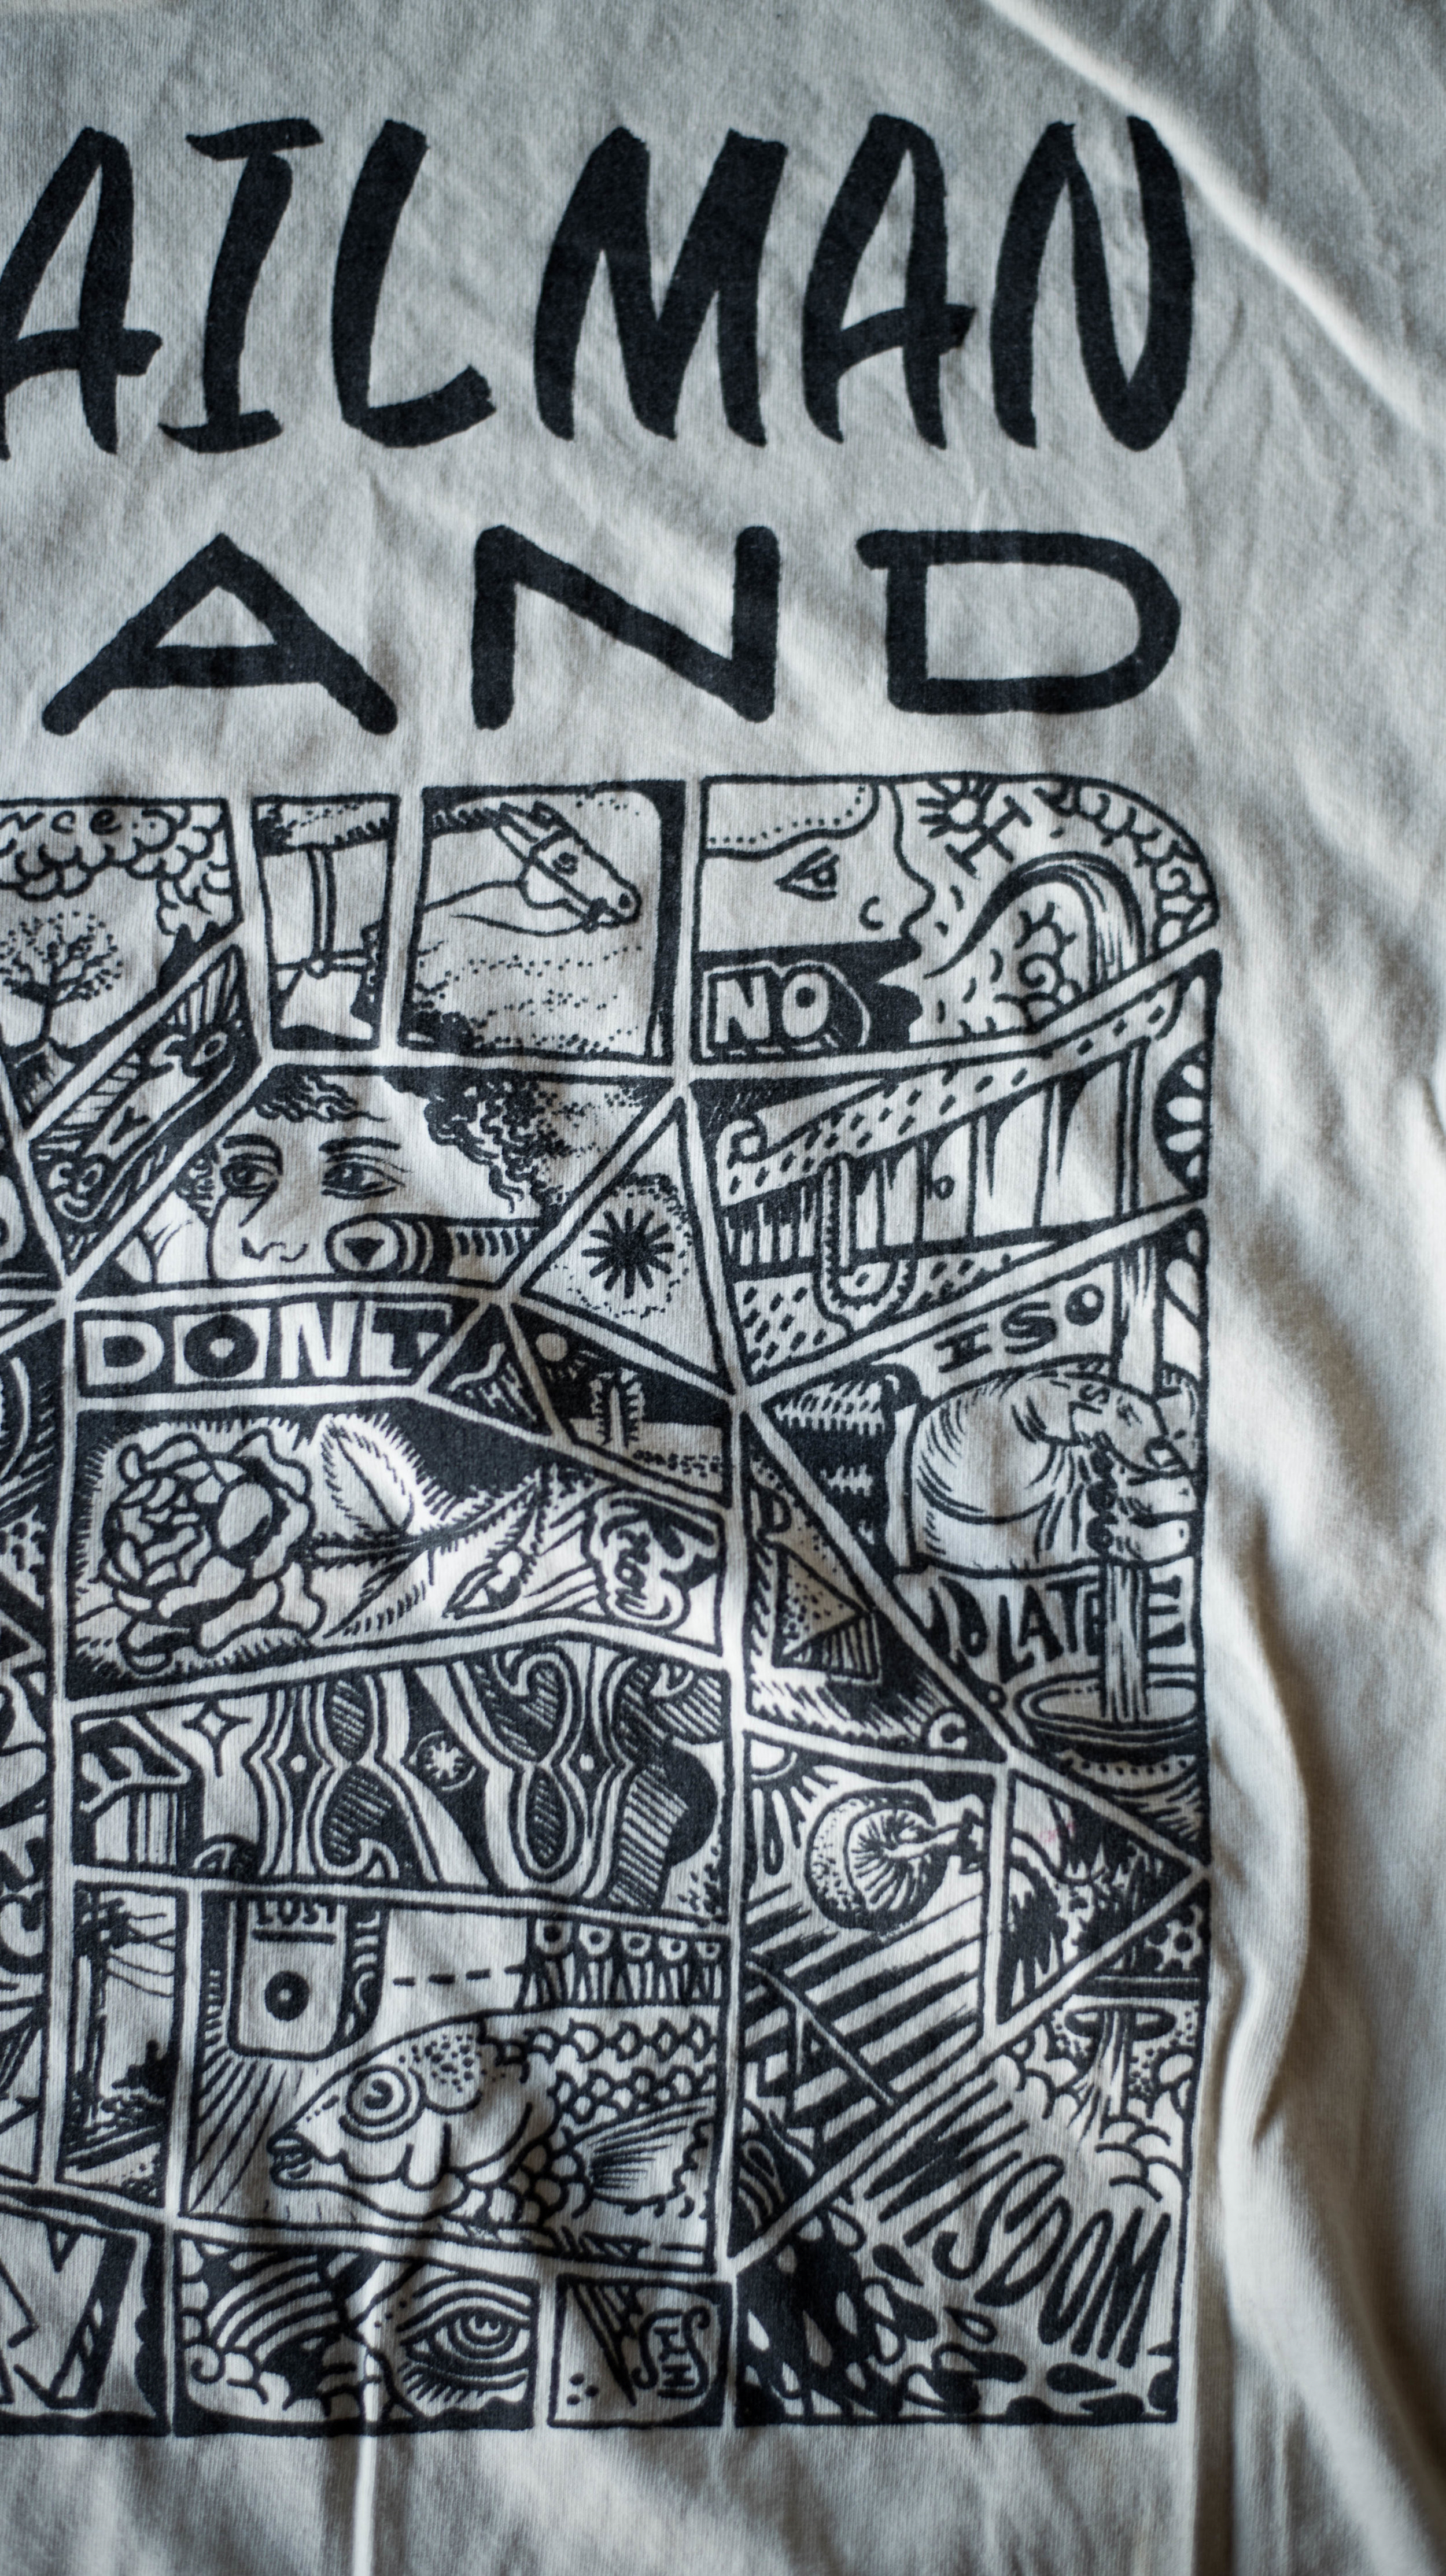 Mailman Land. Print method SOFT. Screen printed on a Next Level shirt. Printed by A Small Print Shop.